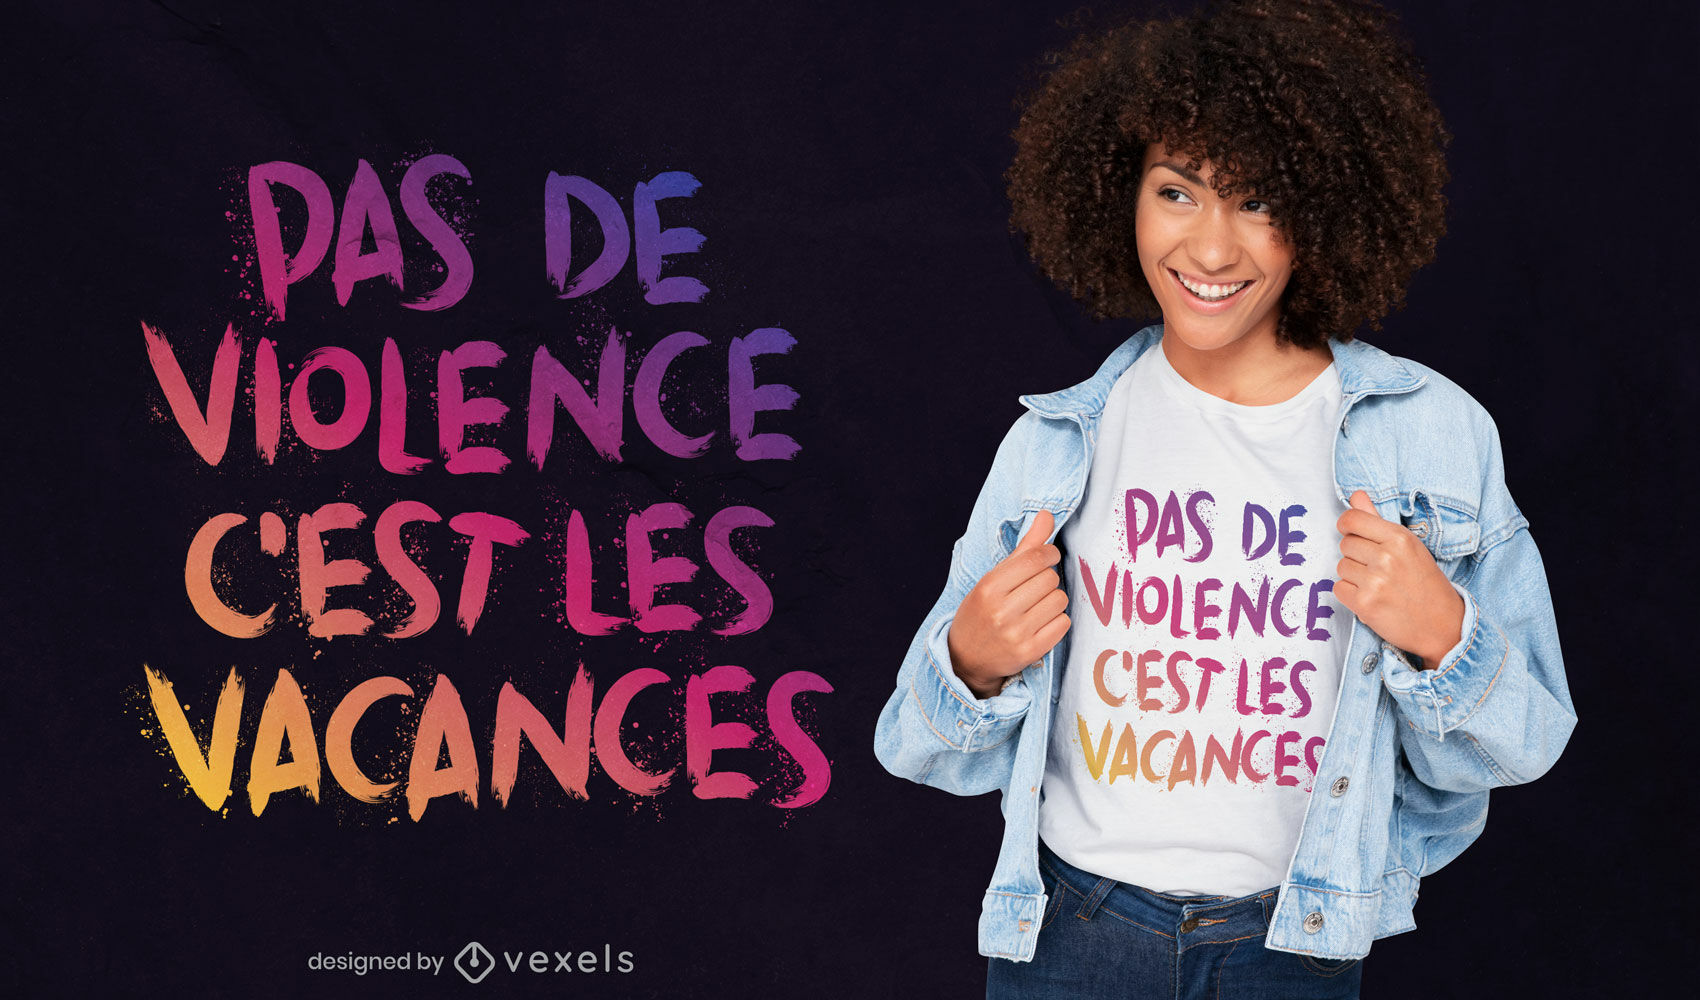 No violence holidays french quote t-shirt design